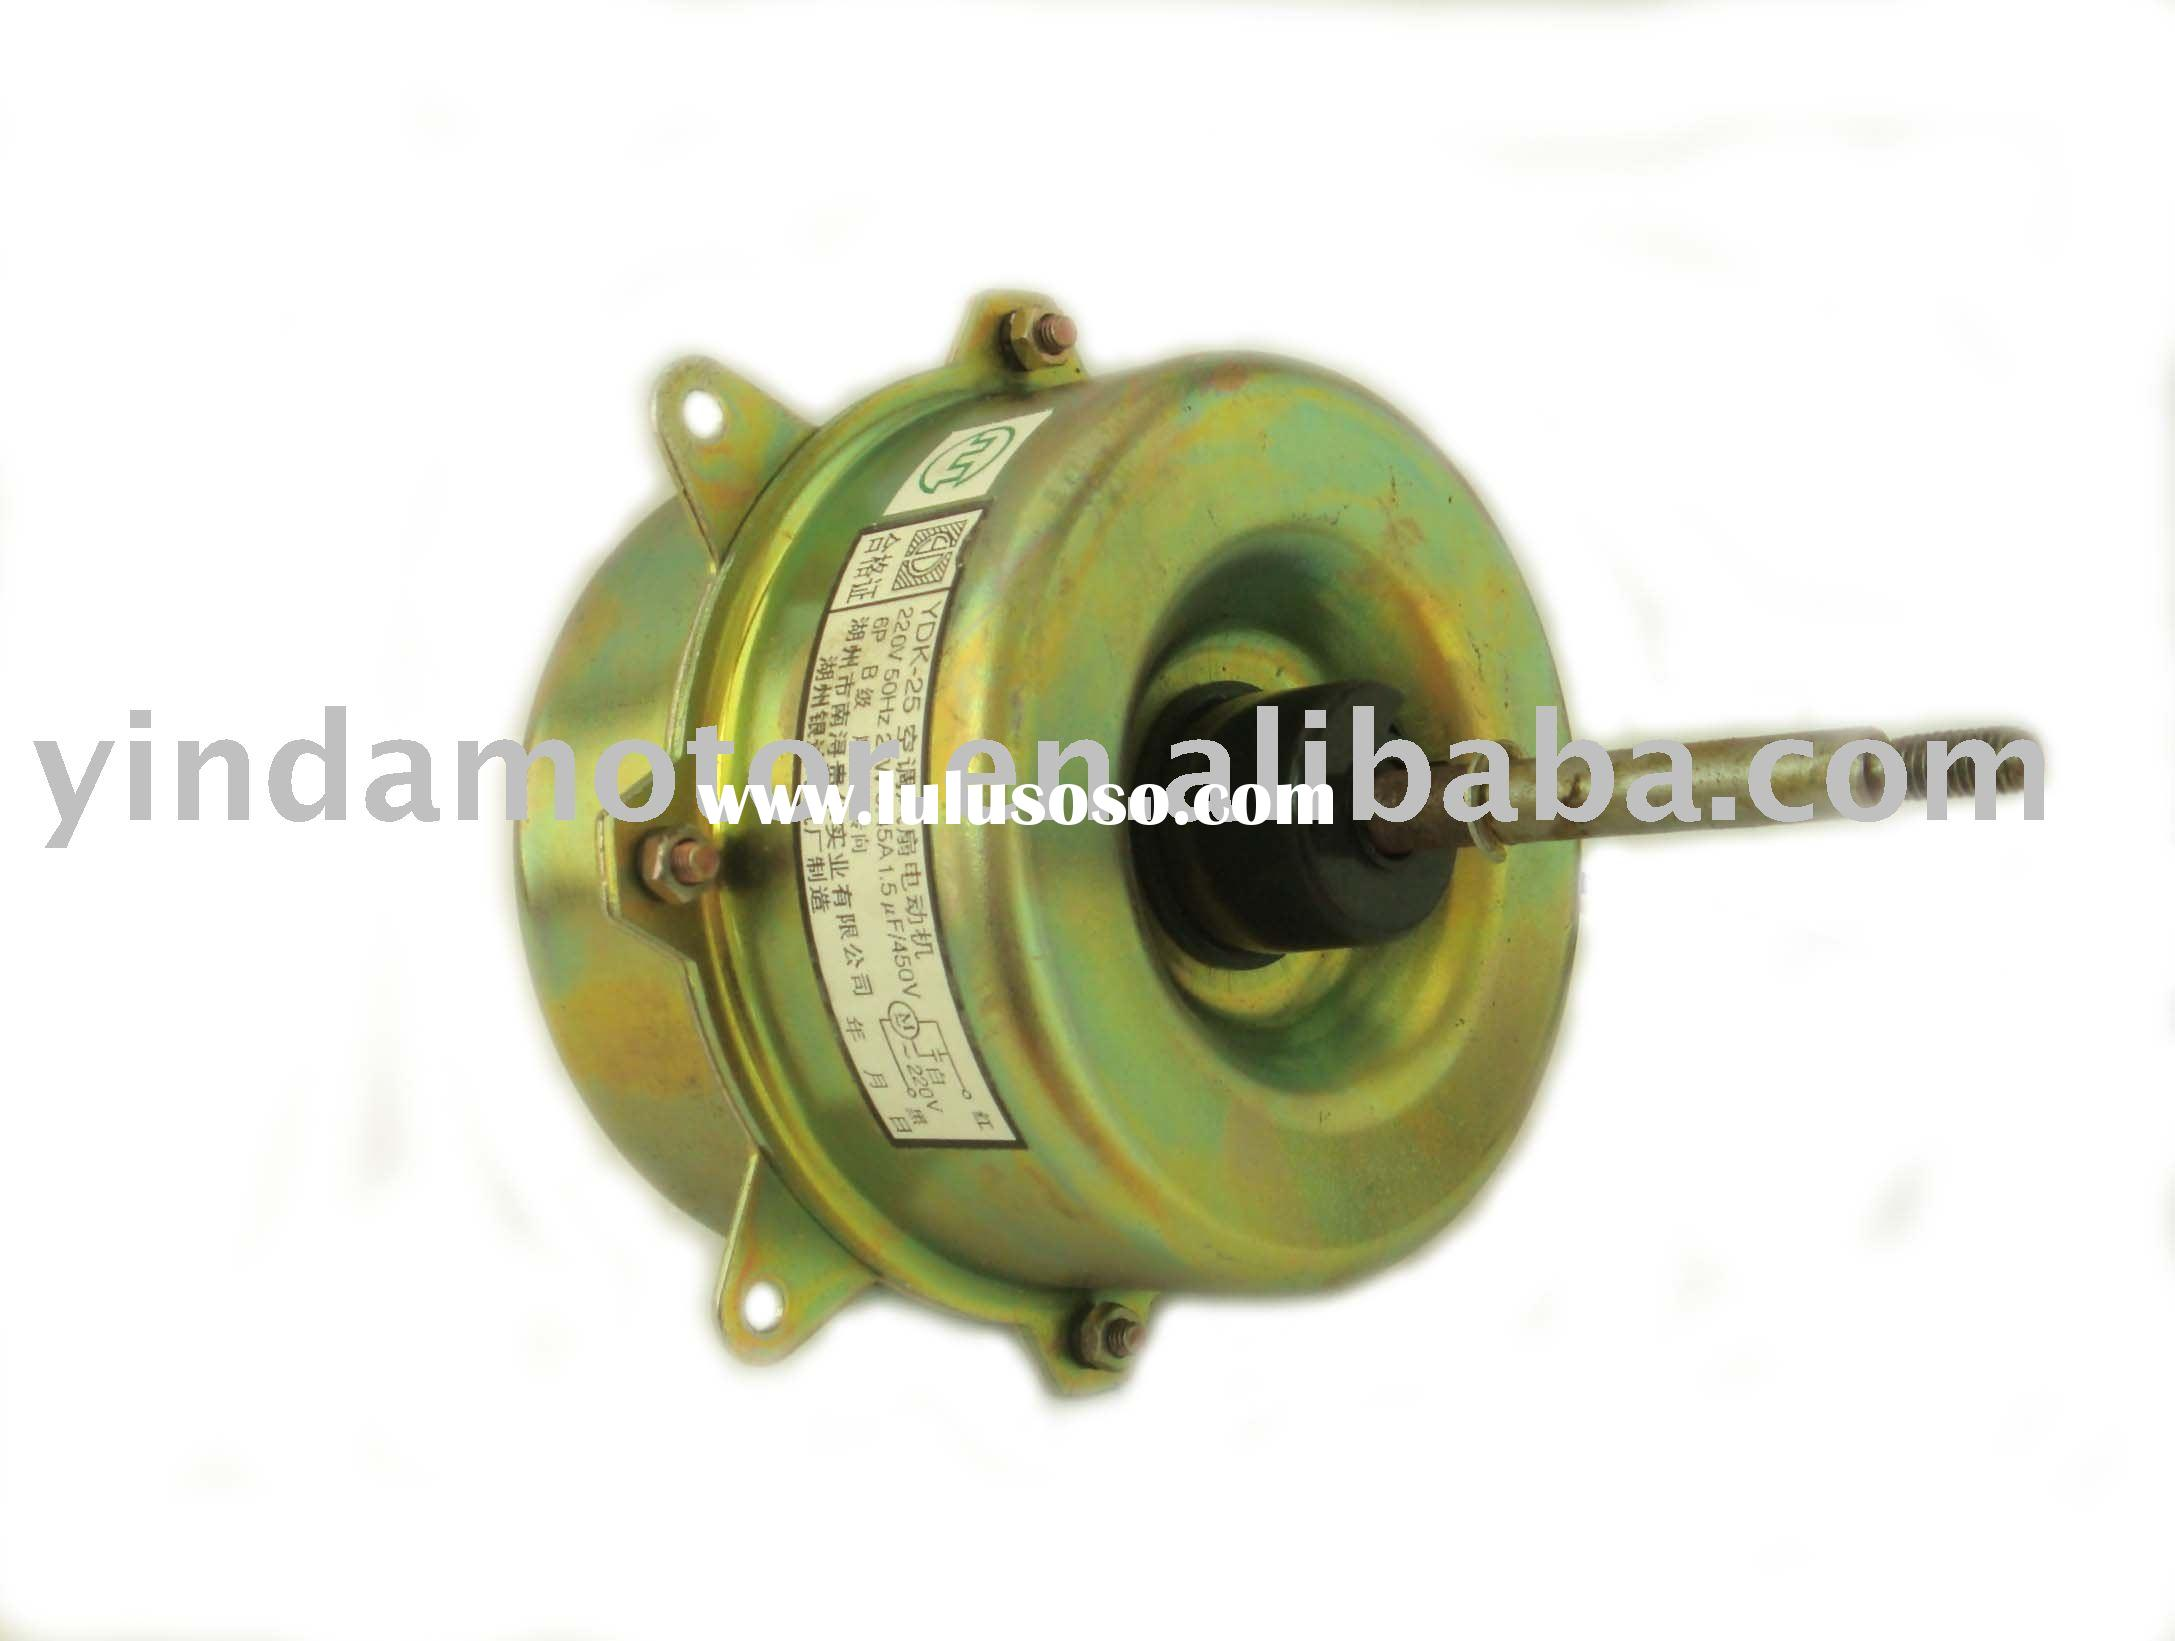 Air Conditioning Fan Motor For Sale Price Taiwan